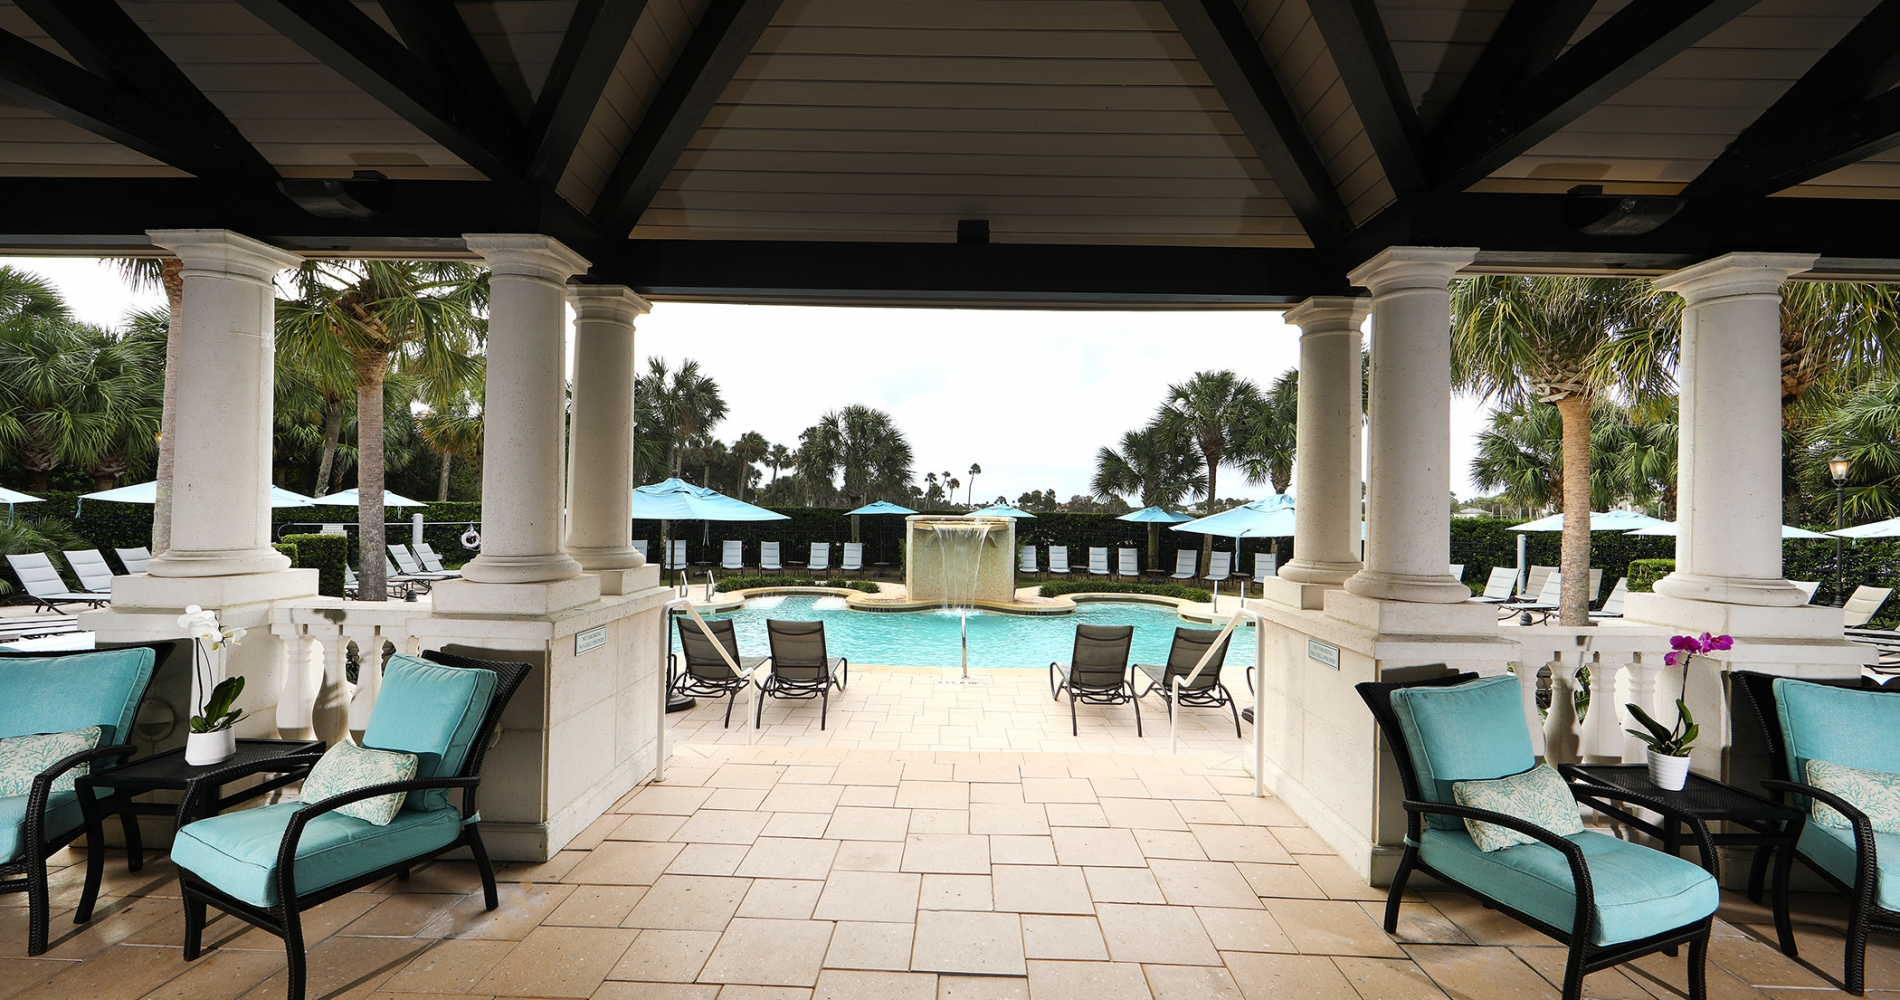 Covered area of the outdoor pool deck at the Inn Spa